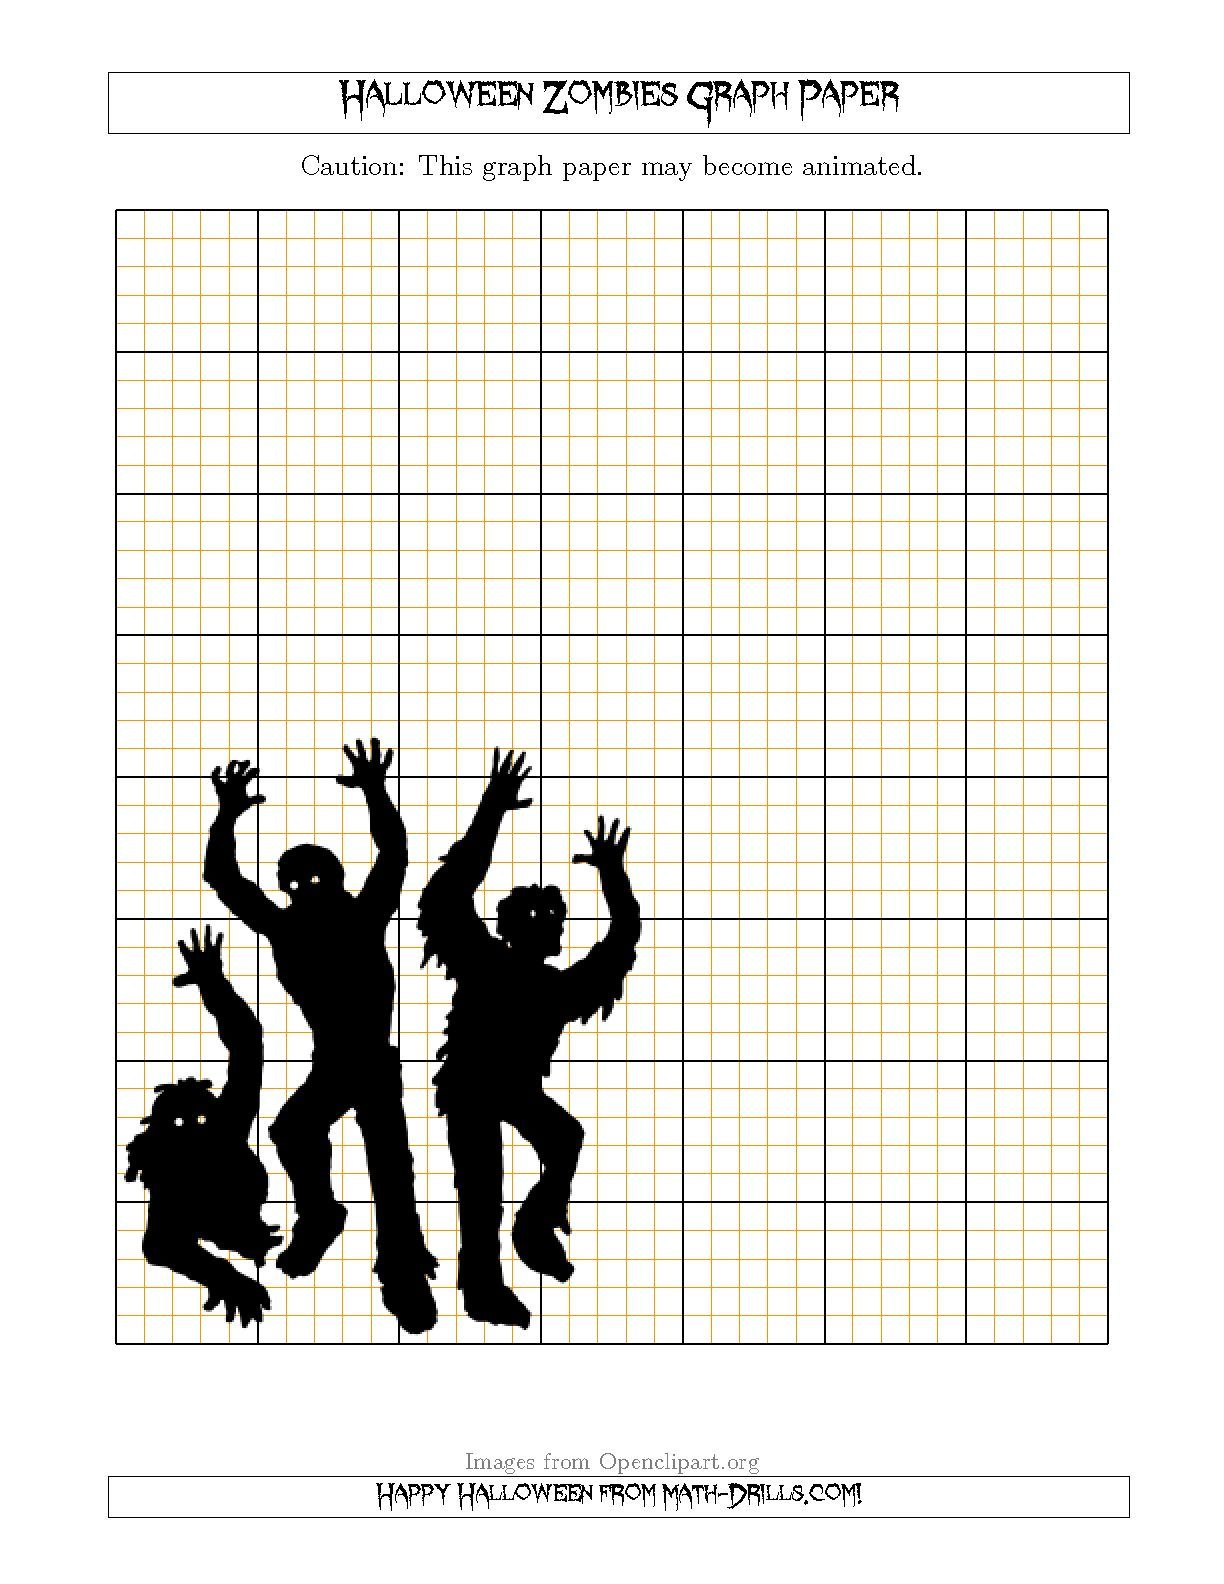 New 09 17 Halloween Zombies 2 5 0 5 Cm Math Worksheet Freemath